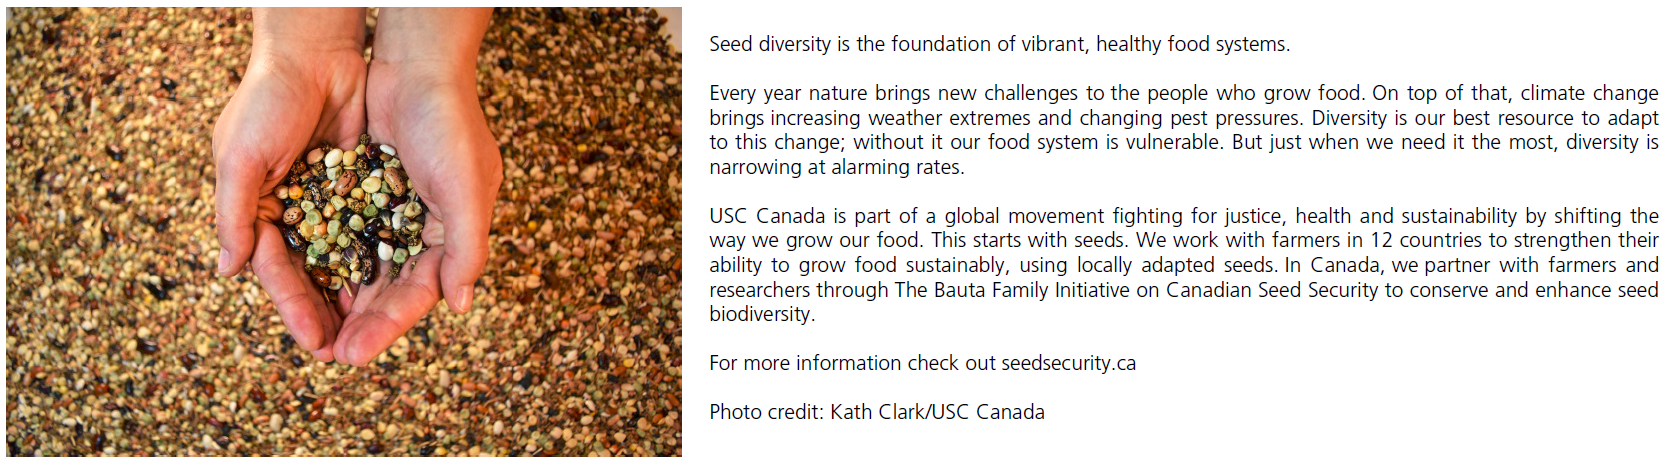 Cupped hands holding seeds. Photo credit: Kath Clark/USC Canada